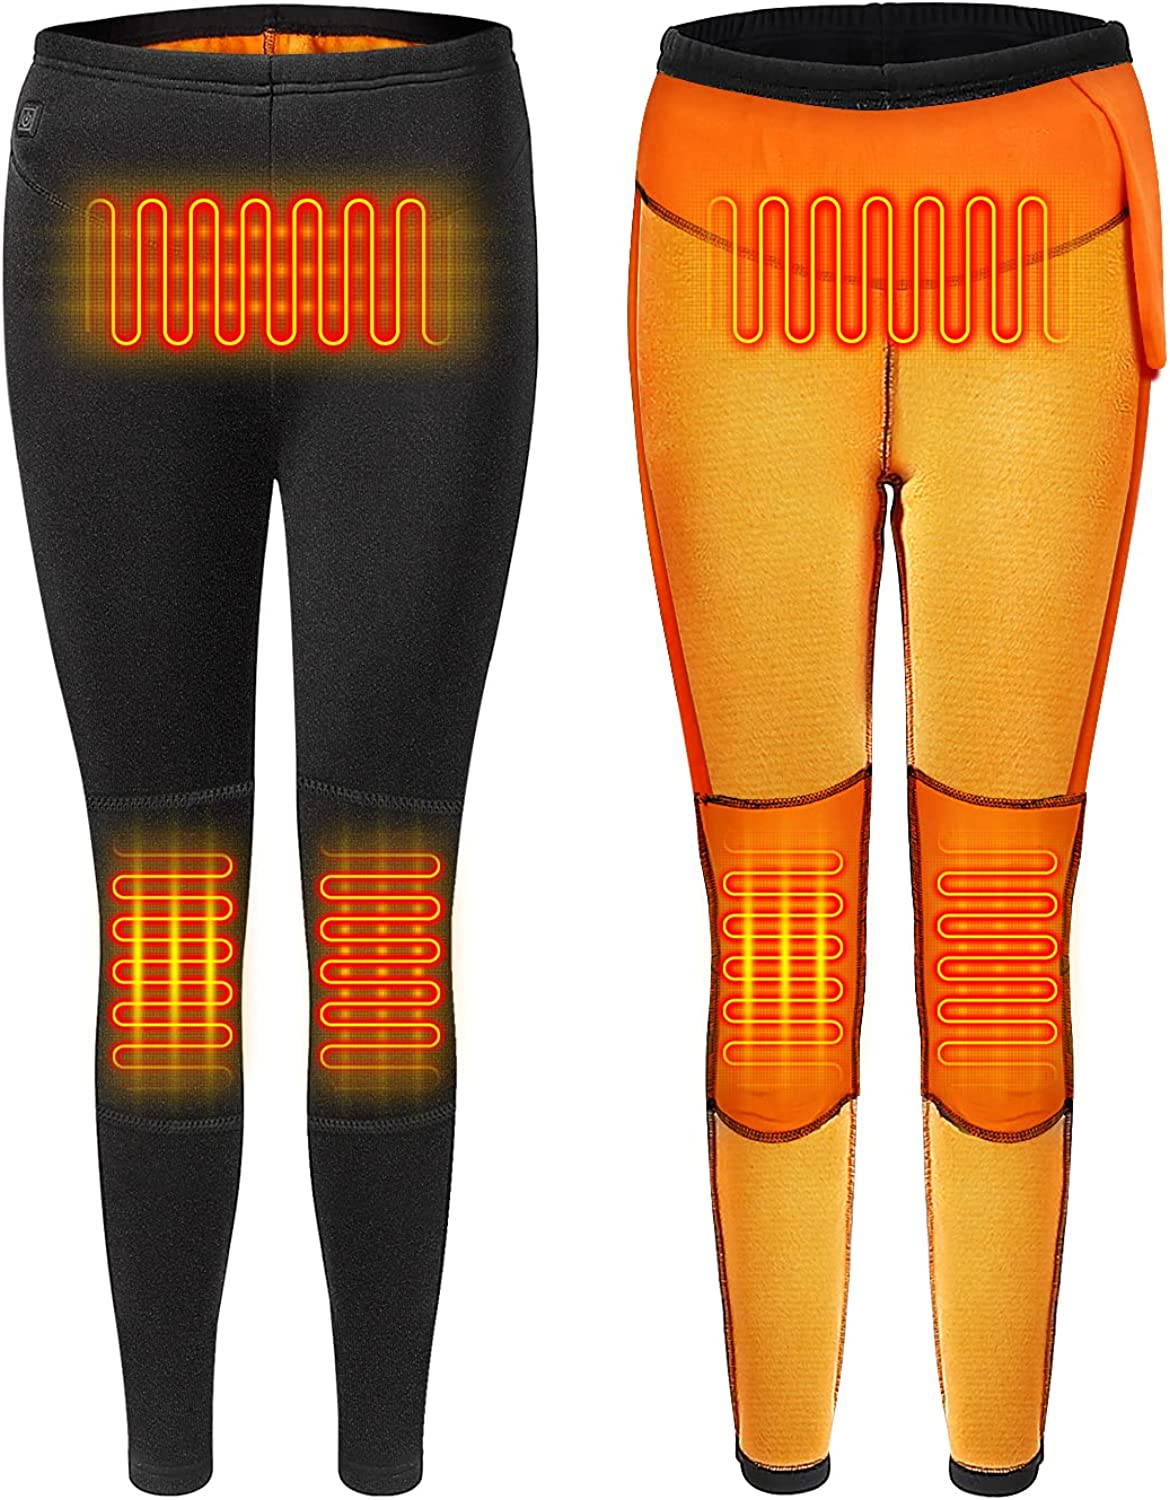 Heated Pants Thermal Underwear for Women USB, Electric Heating Leggings Fleece Lined for Winter Outdoor (No Battery)